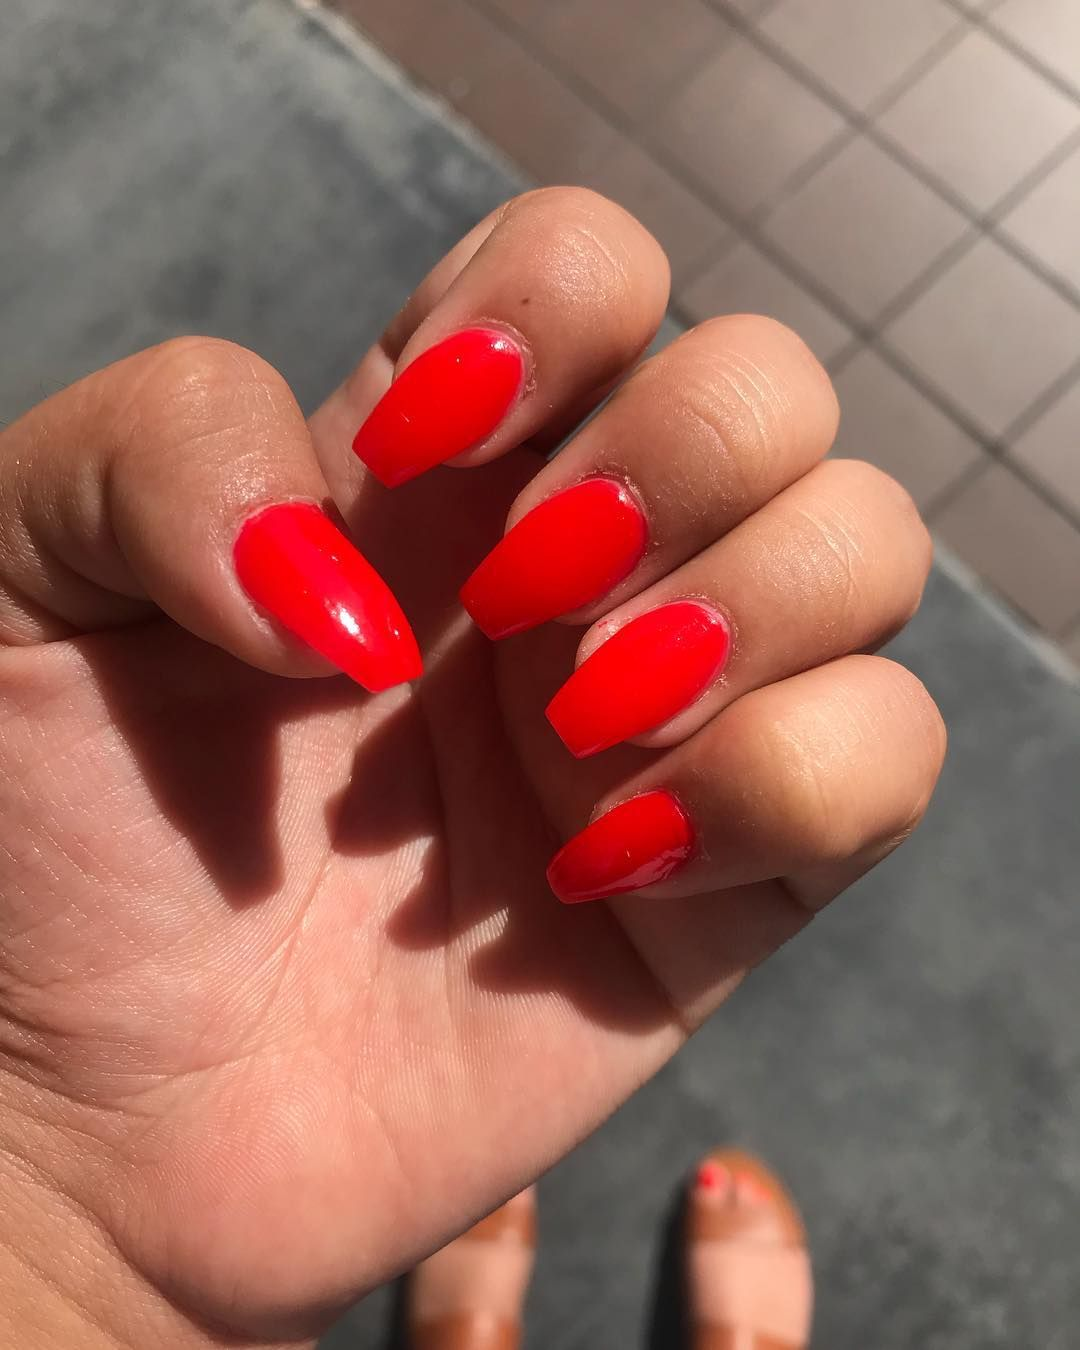 Orange Red Summanails Summerlook Summer Summernails Orange Red Socute Shiny Nails Nailsdid Cherry Cher Red Nails Red Acrylic Nails Bright Red Nails